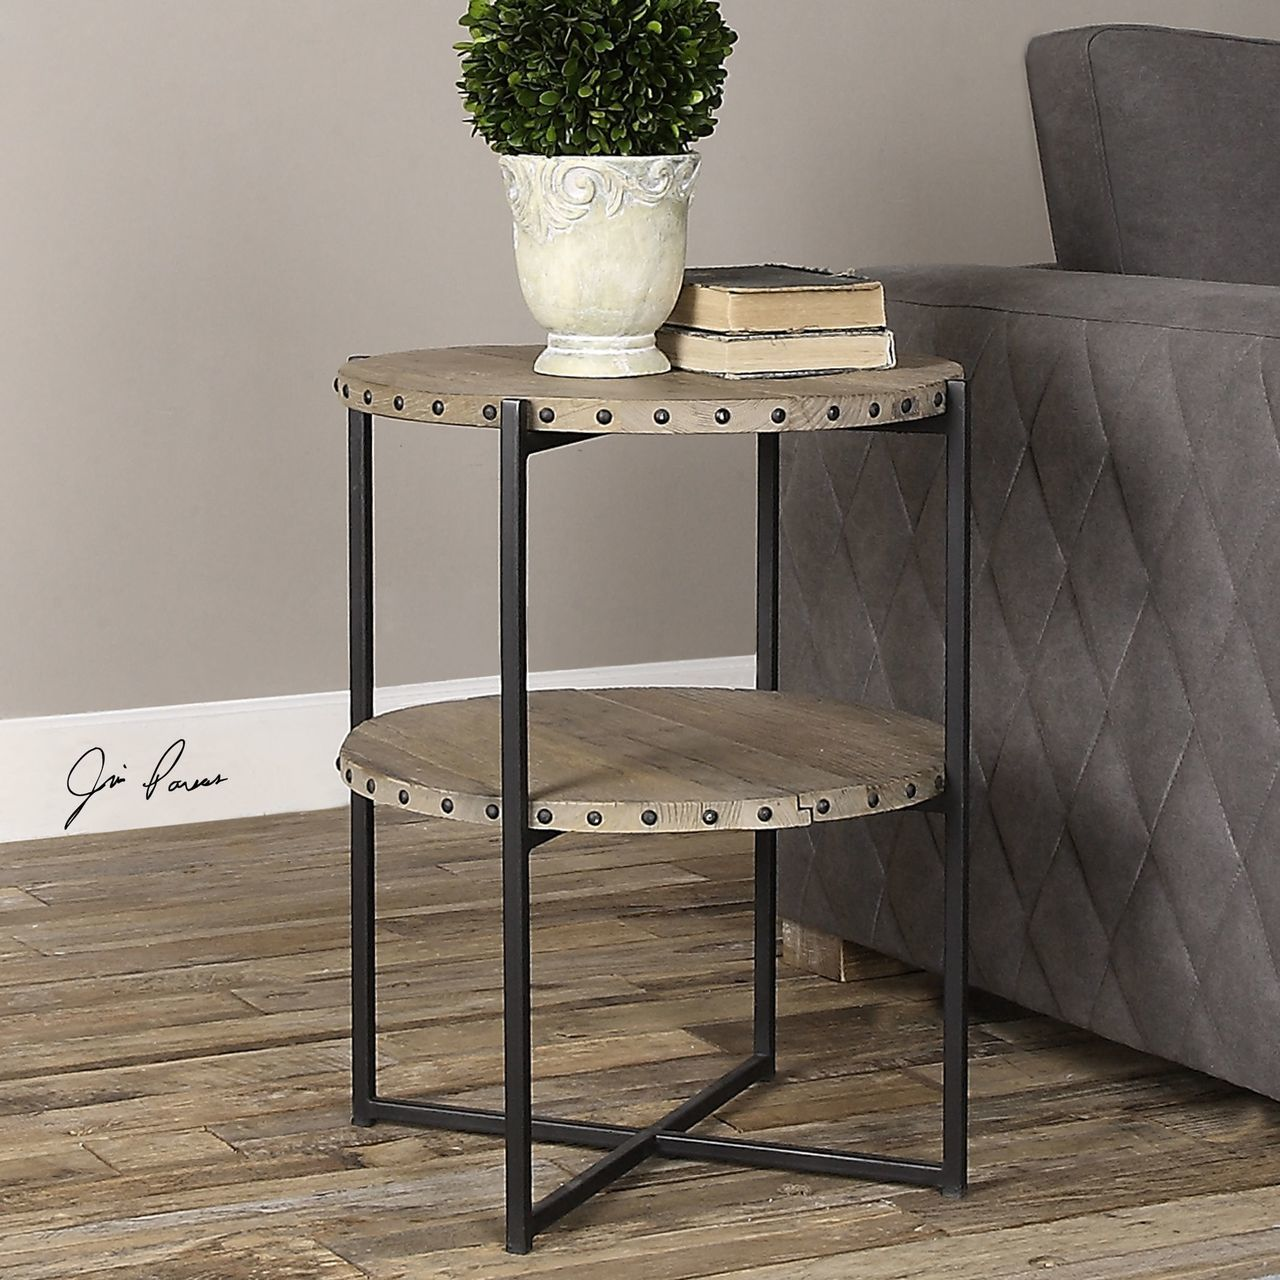 uttermost kamau round accent table rug fashion martel counter height dining rattan side glass top home goods dressers oval marble pennington furniture skinny end ikea cool tables